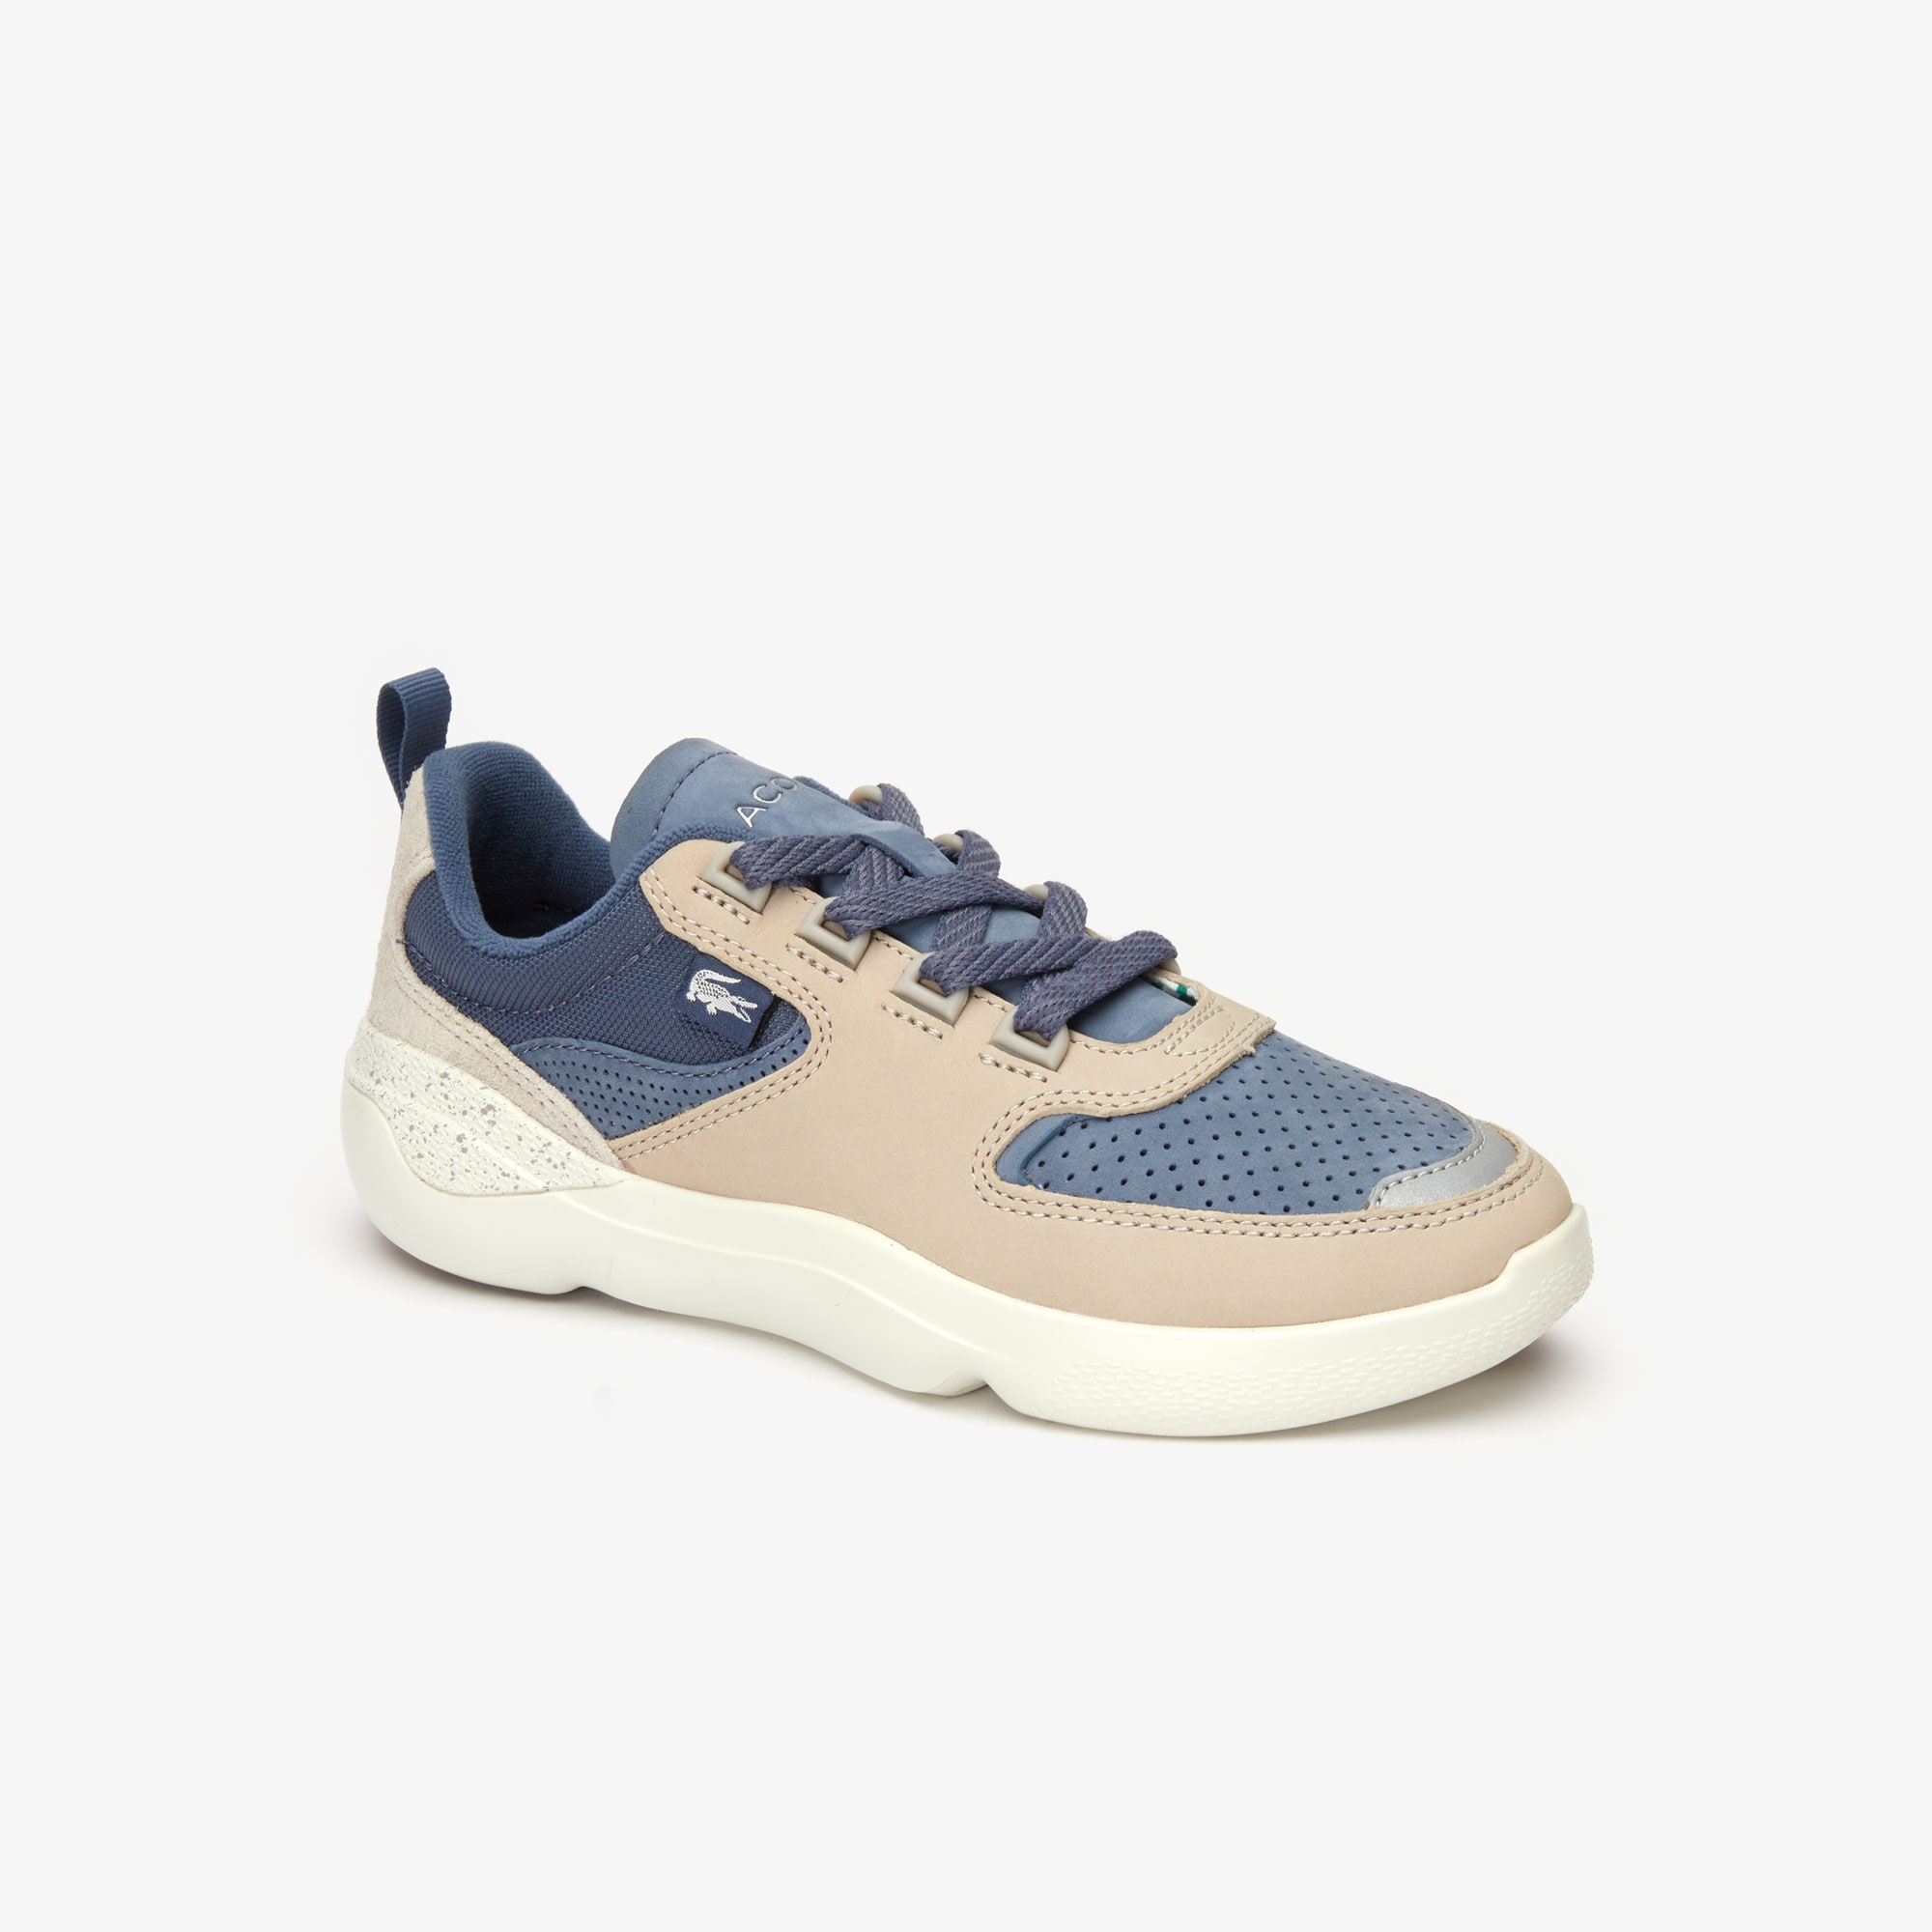 Women's Wildcard Paneled Leather Sneakers